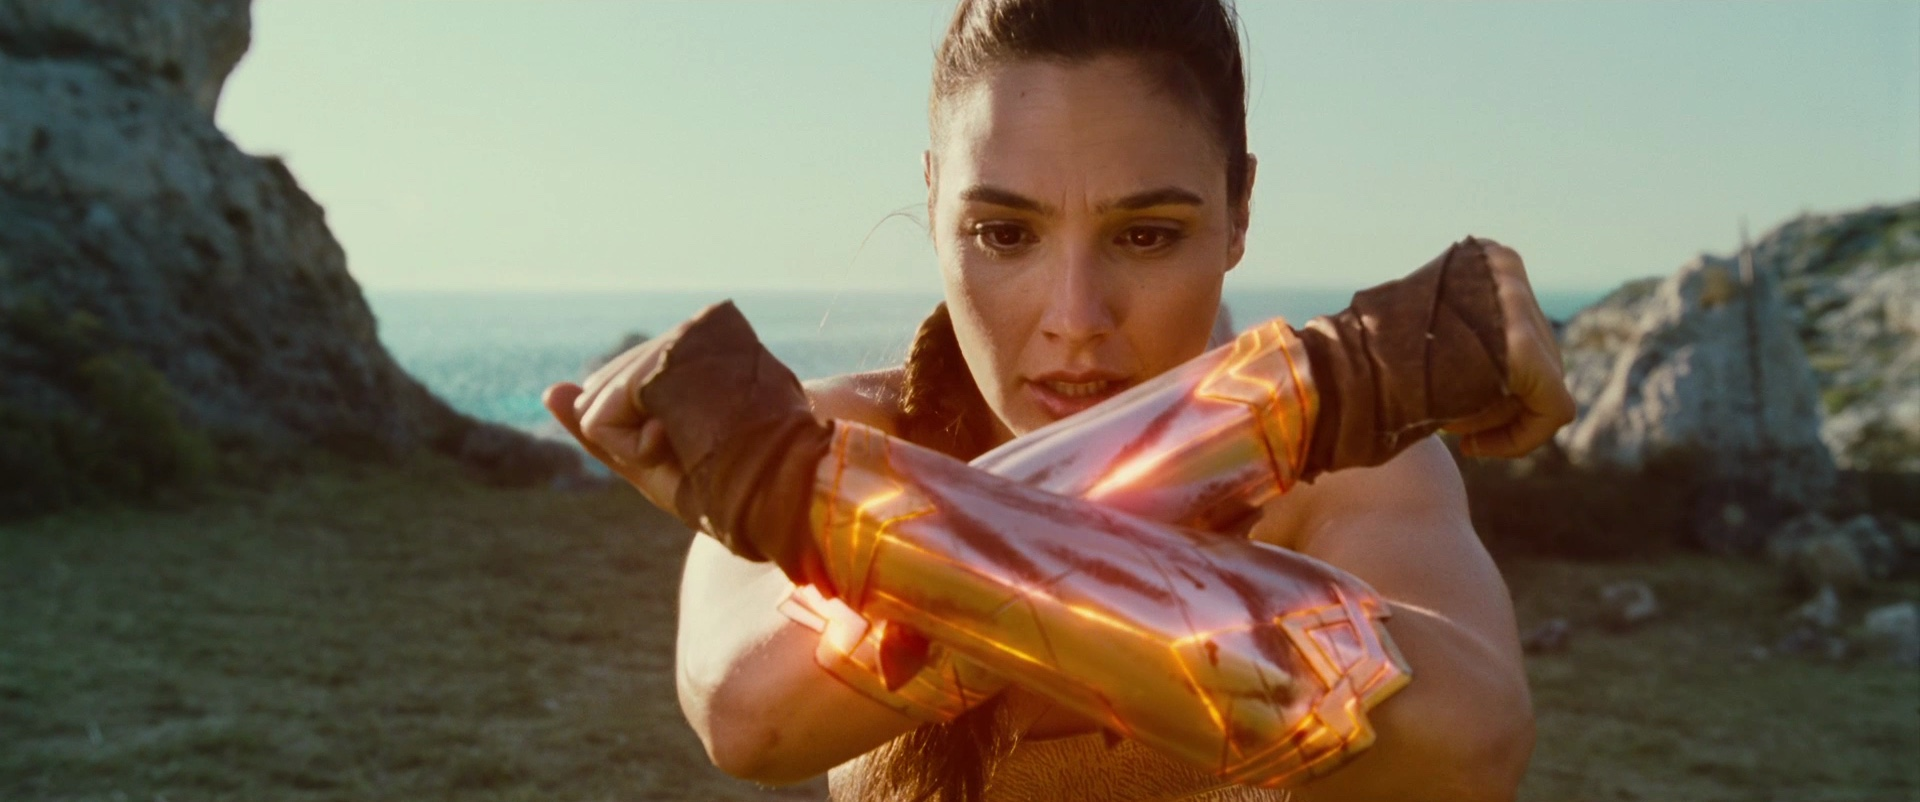 wonder-woman-trailer-3-hd-screencaps-20